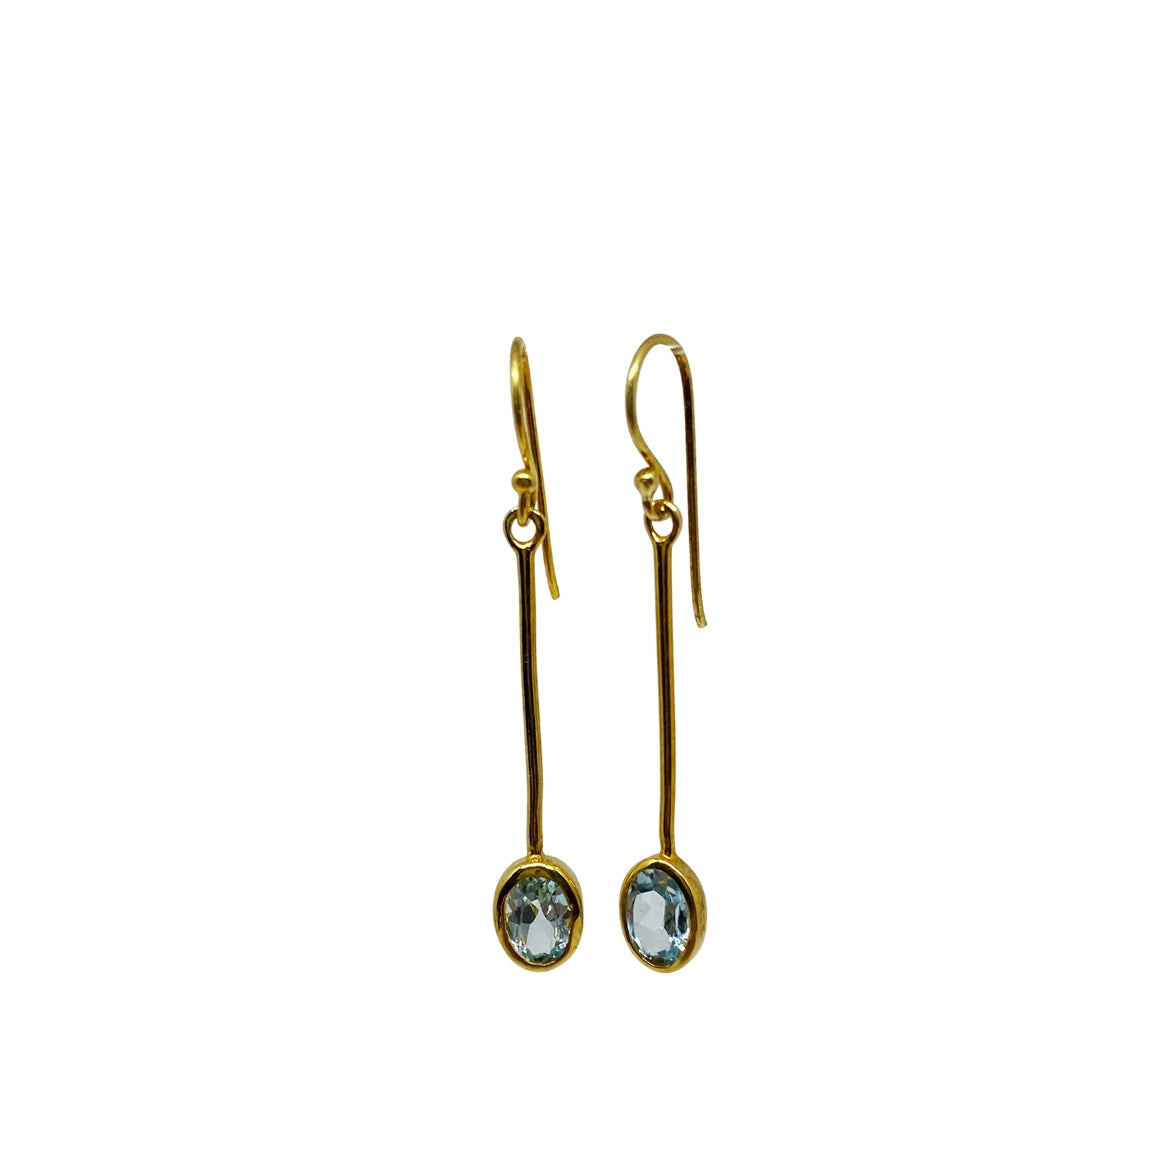 Gallardo and Blaine - Sequola Earrings